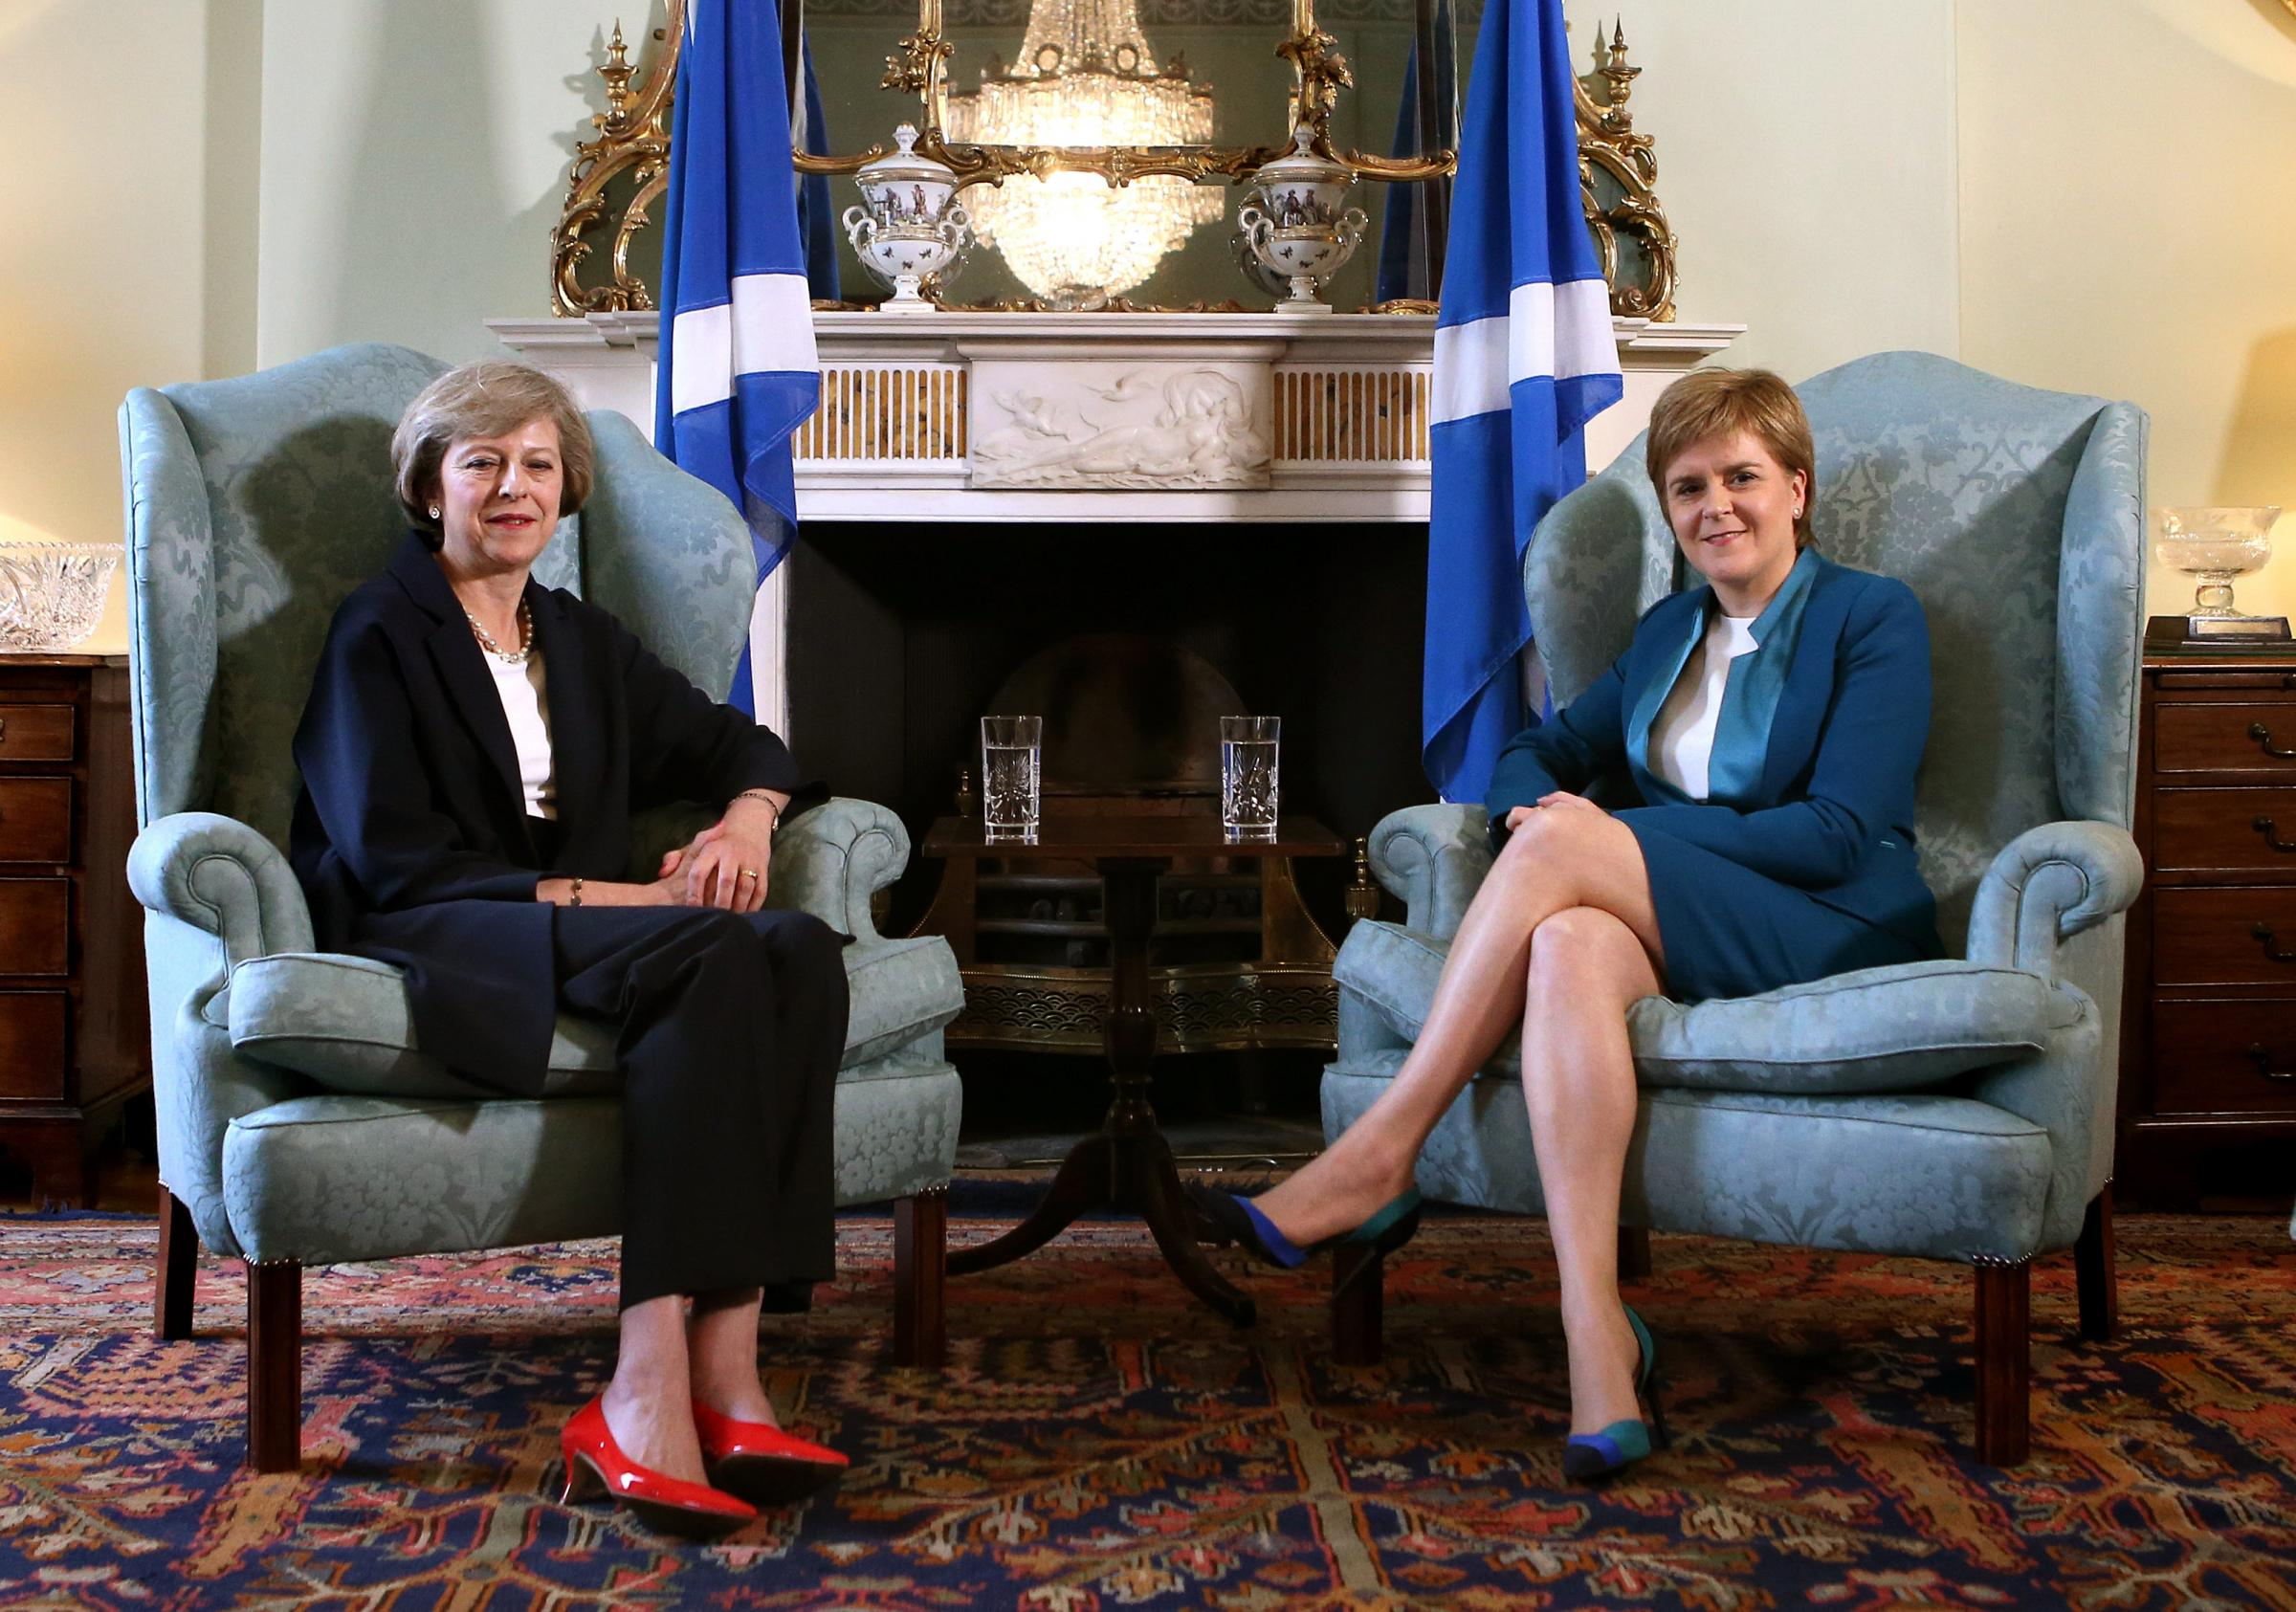 The rhetoric between Theresa May and Nicola Sturgeon is likely to intensify after Article 50 is invoked